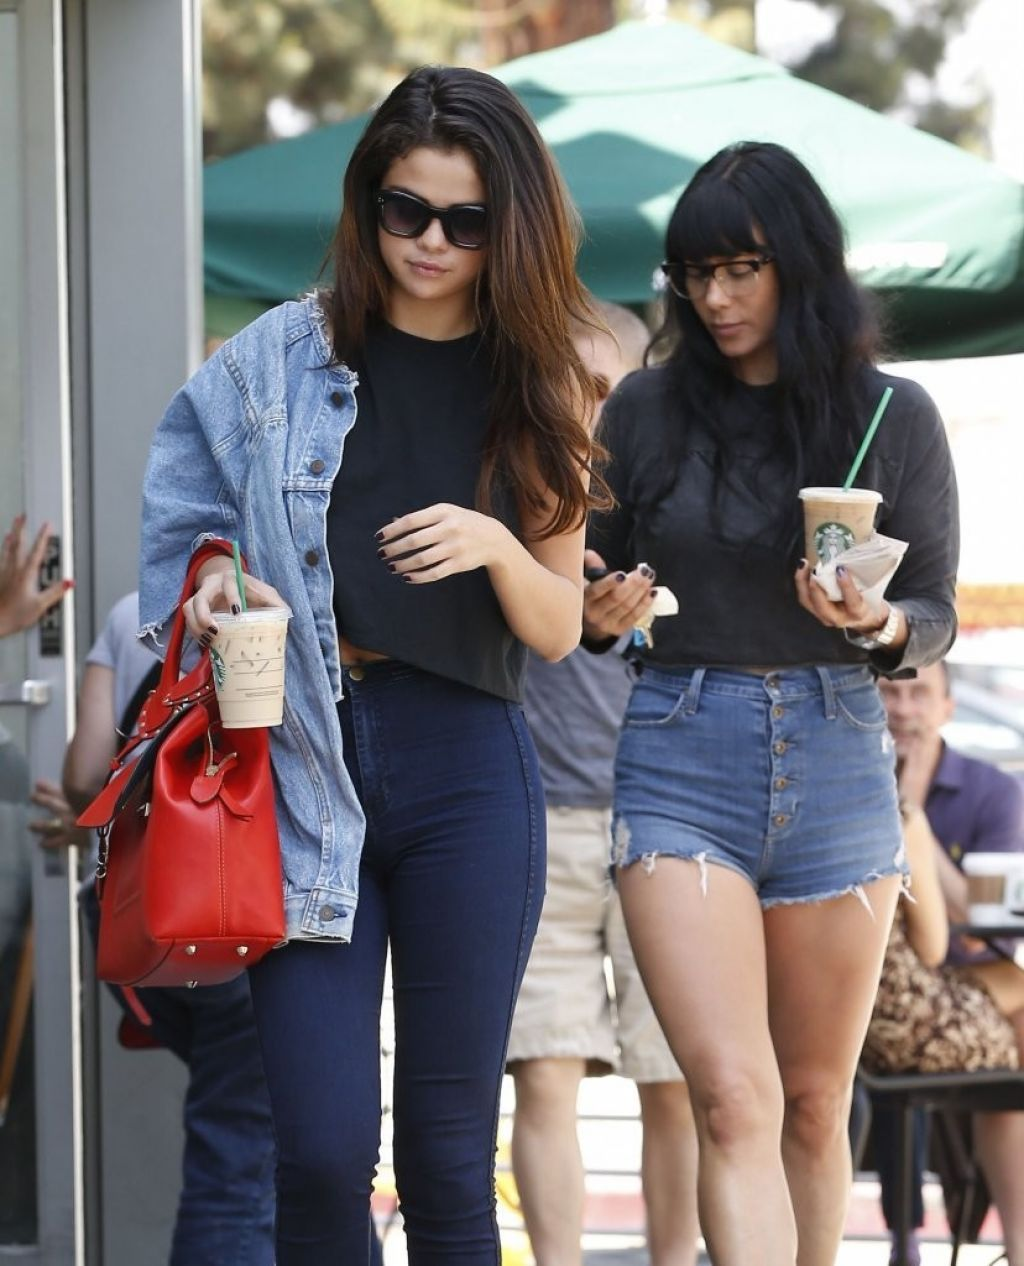 selena gomez style casual style 2014 google search